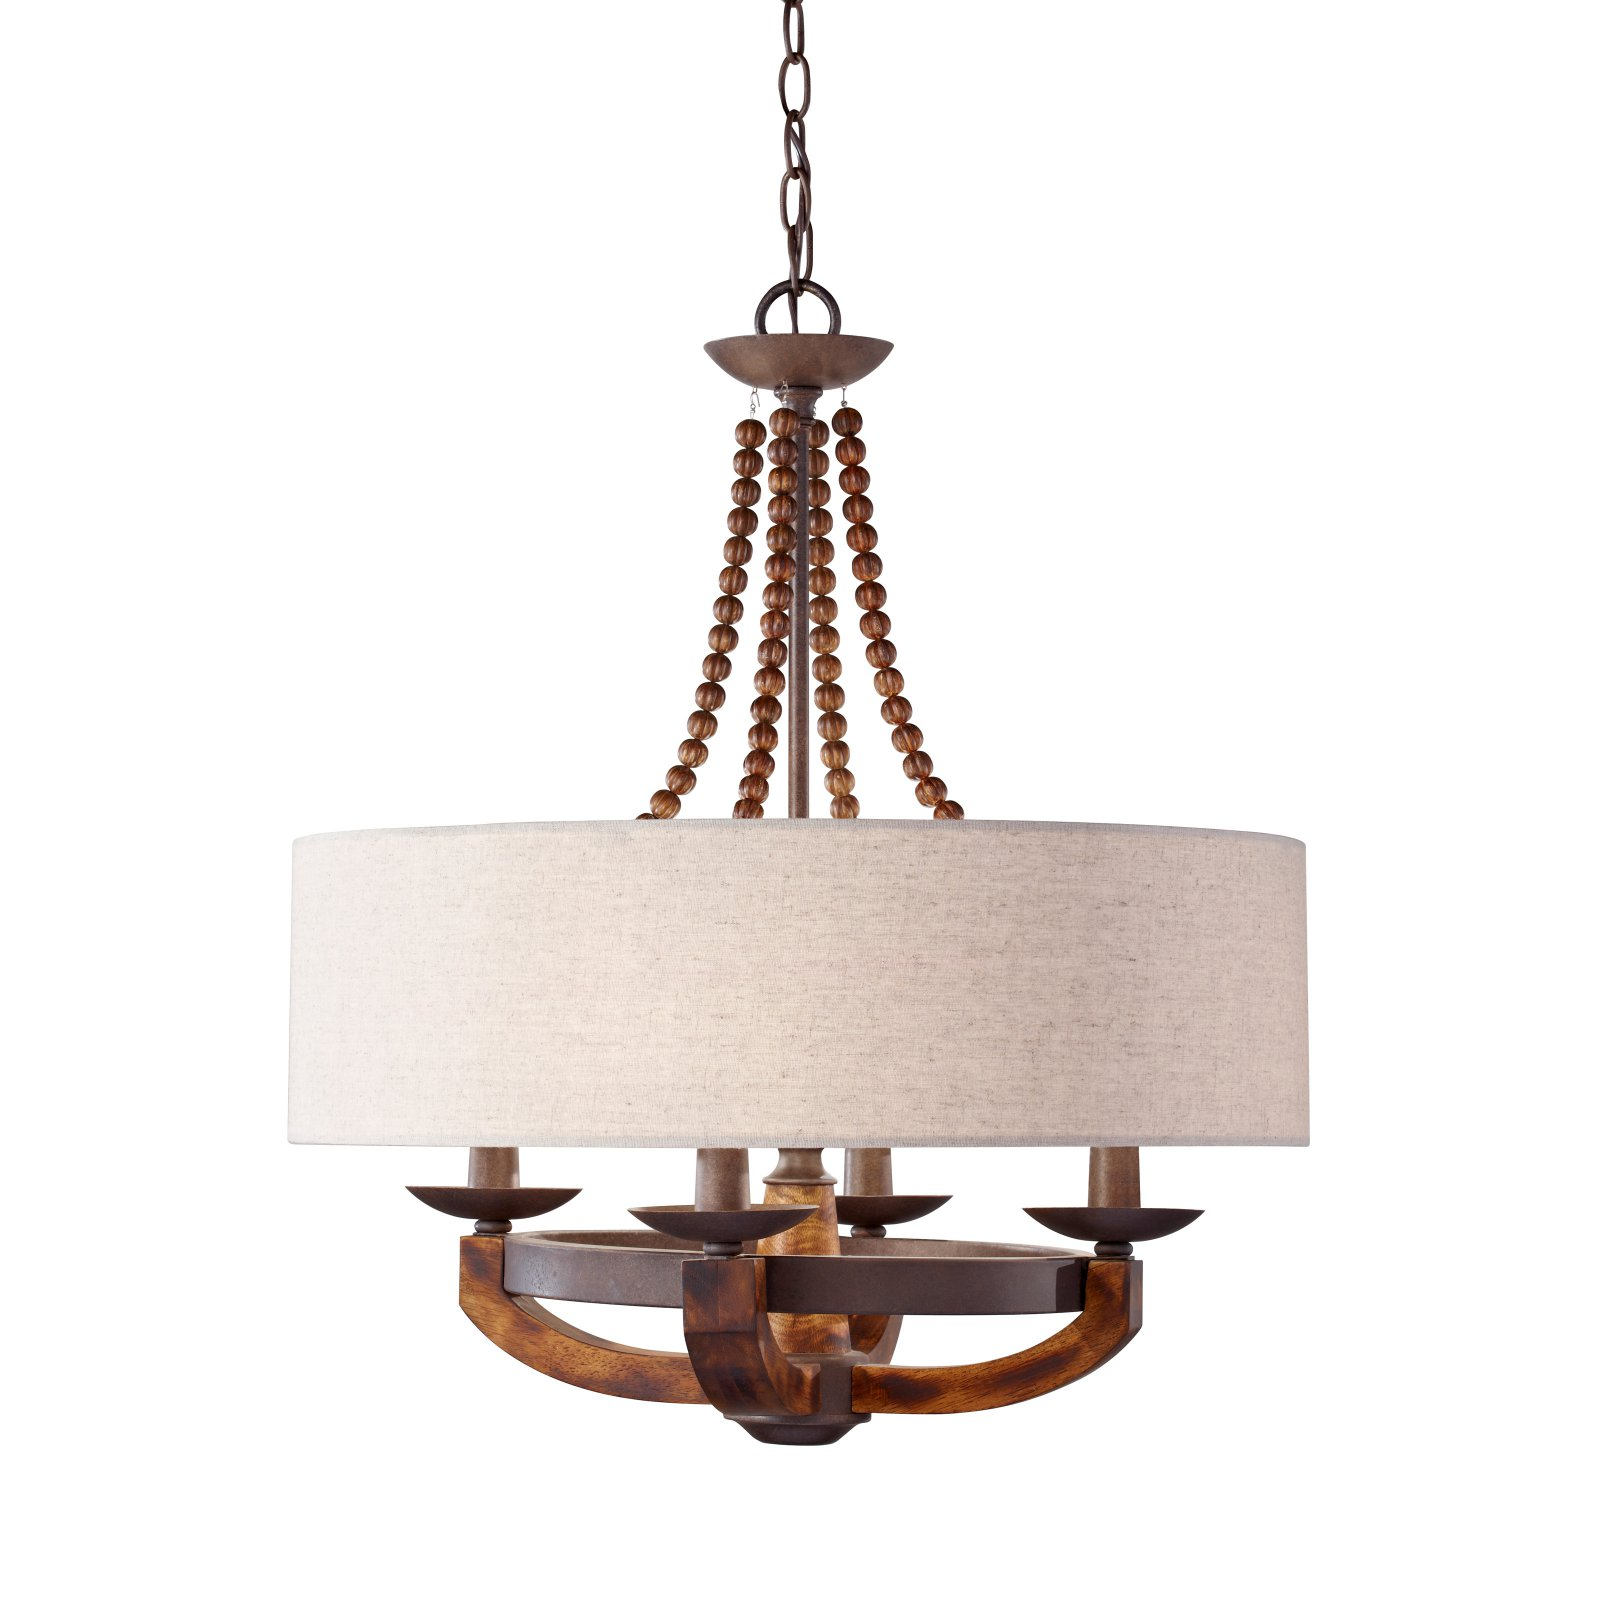 Feiss Adan Chandelier 22.13W in. Rustic Iron Burnished Wood by Murray Feiss